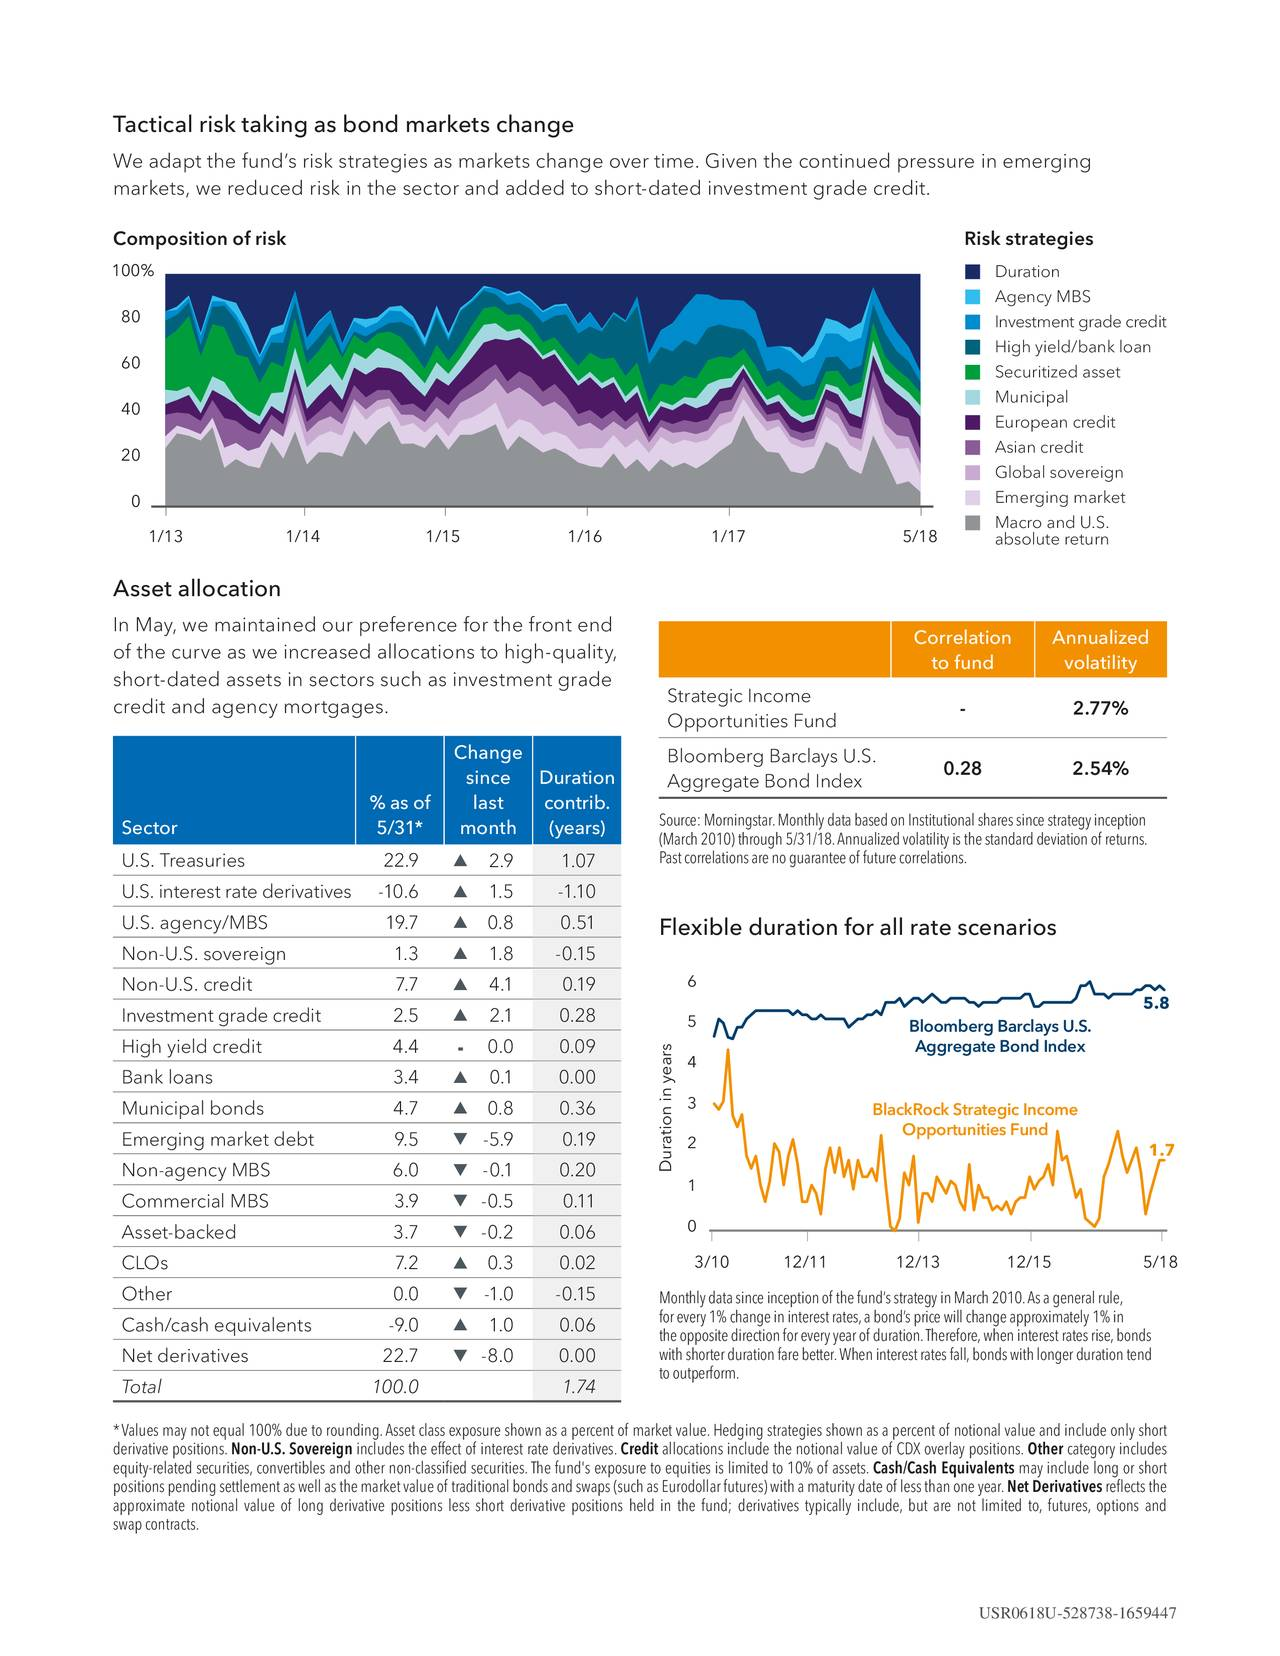 We adapt the fund's risk strategies as markets change over time. Given the continued pressure in emerging markets, we reduced risk in the sector and added to short-dated investment grade credit. Composition of risk Risk strategies 100% Duration Agency MBS 80 Investment grade credit 60 High yield/bank loand Securitized asset Municipal 40 European credit Asian credit 20 Global sovereign 0 Emerging market Macro and U.S. 1/13 1/14 1/15 1/16 1/17 5/18 absolute return Asset allocation In May, we maintained our preference for the front end Correlation Annualized of the curve as we increased allocations to high-quality, to fund volatility short-dated assets in sectors such as investment grade Strategic Income credit and agency mortgages. Opportunities Fund - 2.77% Change Bloomberg Barclays U.S. 0.28 2.54% since Duration Aggregate Bond Index % as of last contrib. Sector 5/31* month (years) Source:Morningstar.MonthlydatabasedonInstitutionalsharessincestrategyinception (March2010)through5/31/18.Annualizedvolatilityisthestandarddeviationof returns. U.S. Treasuries 22.9 ▲ 2.9 1.07 Pastcorrelationsarenoguaranteeof future correlations. U.S. interest rate derivatives -10.6 ▲ 1.5 -1.10 U.S. agency/MBS 19.7 ▲ 0.8 0.51 Flexible duration for all rate scenarios Non-U.S. sovereign 1.3 ▲ 1.8 -0.15 Non-U.S. credit 7.7 ▲ 4.1 0.19 6 ▯▯8 Investment grade credit 2.5 ▲ 2.1 0.28 5 Bloomberg Barclays U.S. High yield credit 4.4 0.0 0.09 s Aggregate Bond Index - 4 Bank loans 3.4 ▲ 0.1 0.00 Municipal bonds 4.7 ▲ 0.8 0.36 3 BlackRock Strategic Income Opportunities Fund Emerging market debt 9.5 ▼ -5.9 0.19 a2ion in year 1▯▯ Non-agency MBS 6.0 ▼ -0.1 0.20 Dur 1 Commercial MBS 3.9 ▼ -0.5 0.11 0 Asset-backed 3.7 ▼ -0.2 0.06 ▲ 3/10 12/11 12/13 12/15 5/18 CLOs 7.2 0.3 0.02 Other 0.0 ▼ -1.0 -0.15 Monthlydatasinceinceptionof thefund'sstrategyinMarch2010.Asageneralrule, forevery1%changeininterestrates,abond'spricewillchangeapproximately1%in Cash/cash equivalents -9.0 ▲ 1.0 0.06 theoppositedirectionforeveryyea